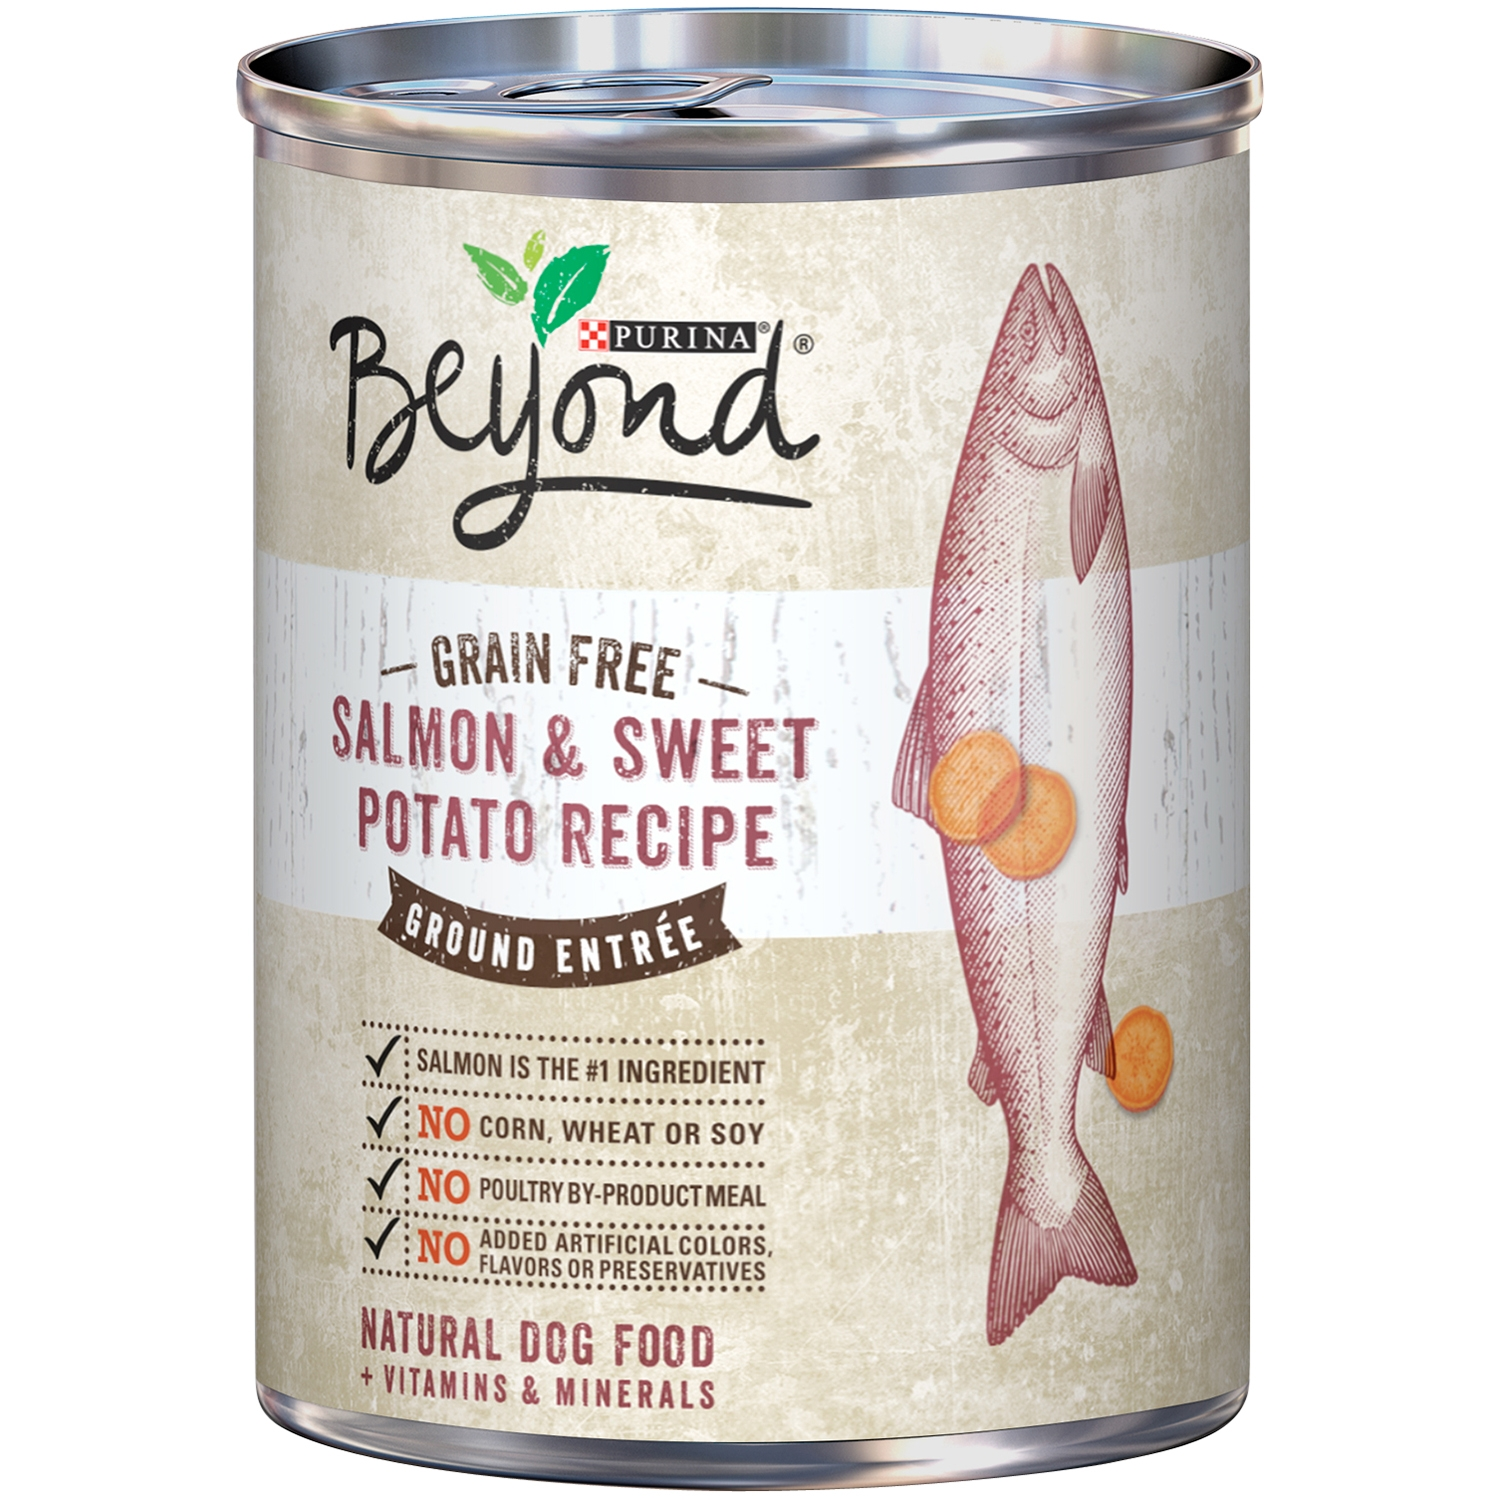 Purina Beyond Grain Free Salmon & Sweet Potato Recipe Ground Entree Dog Food 13 oz. Can